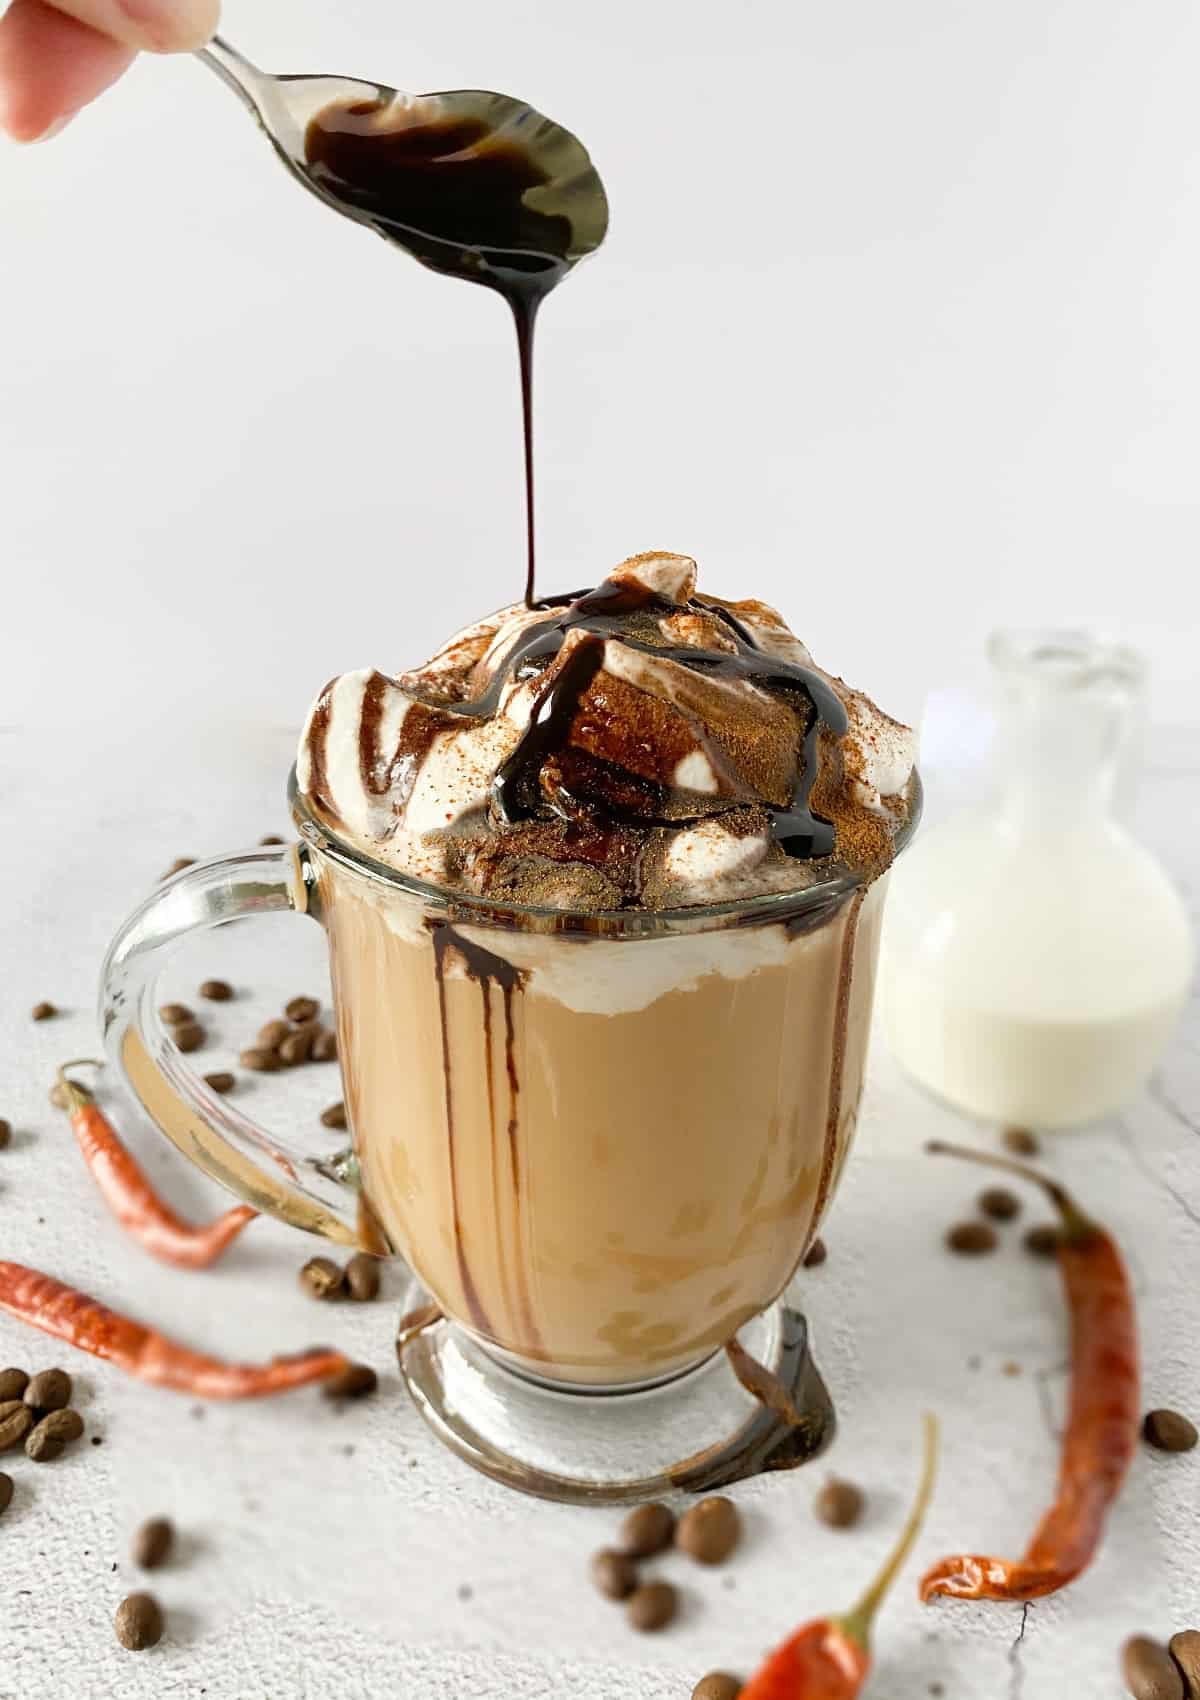 Spicy Cowgirl Coffee, a dessert coffee in a clear mug with whipped cream and chocolate sauce being poured over the top